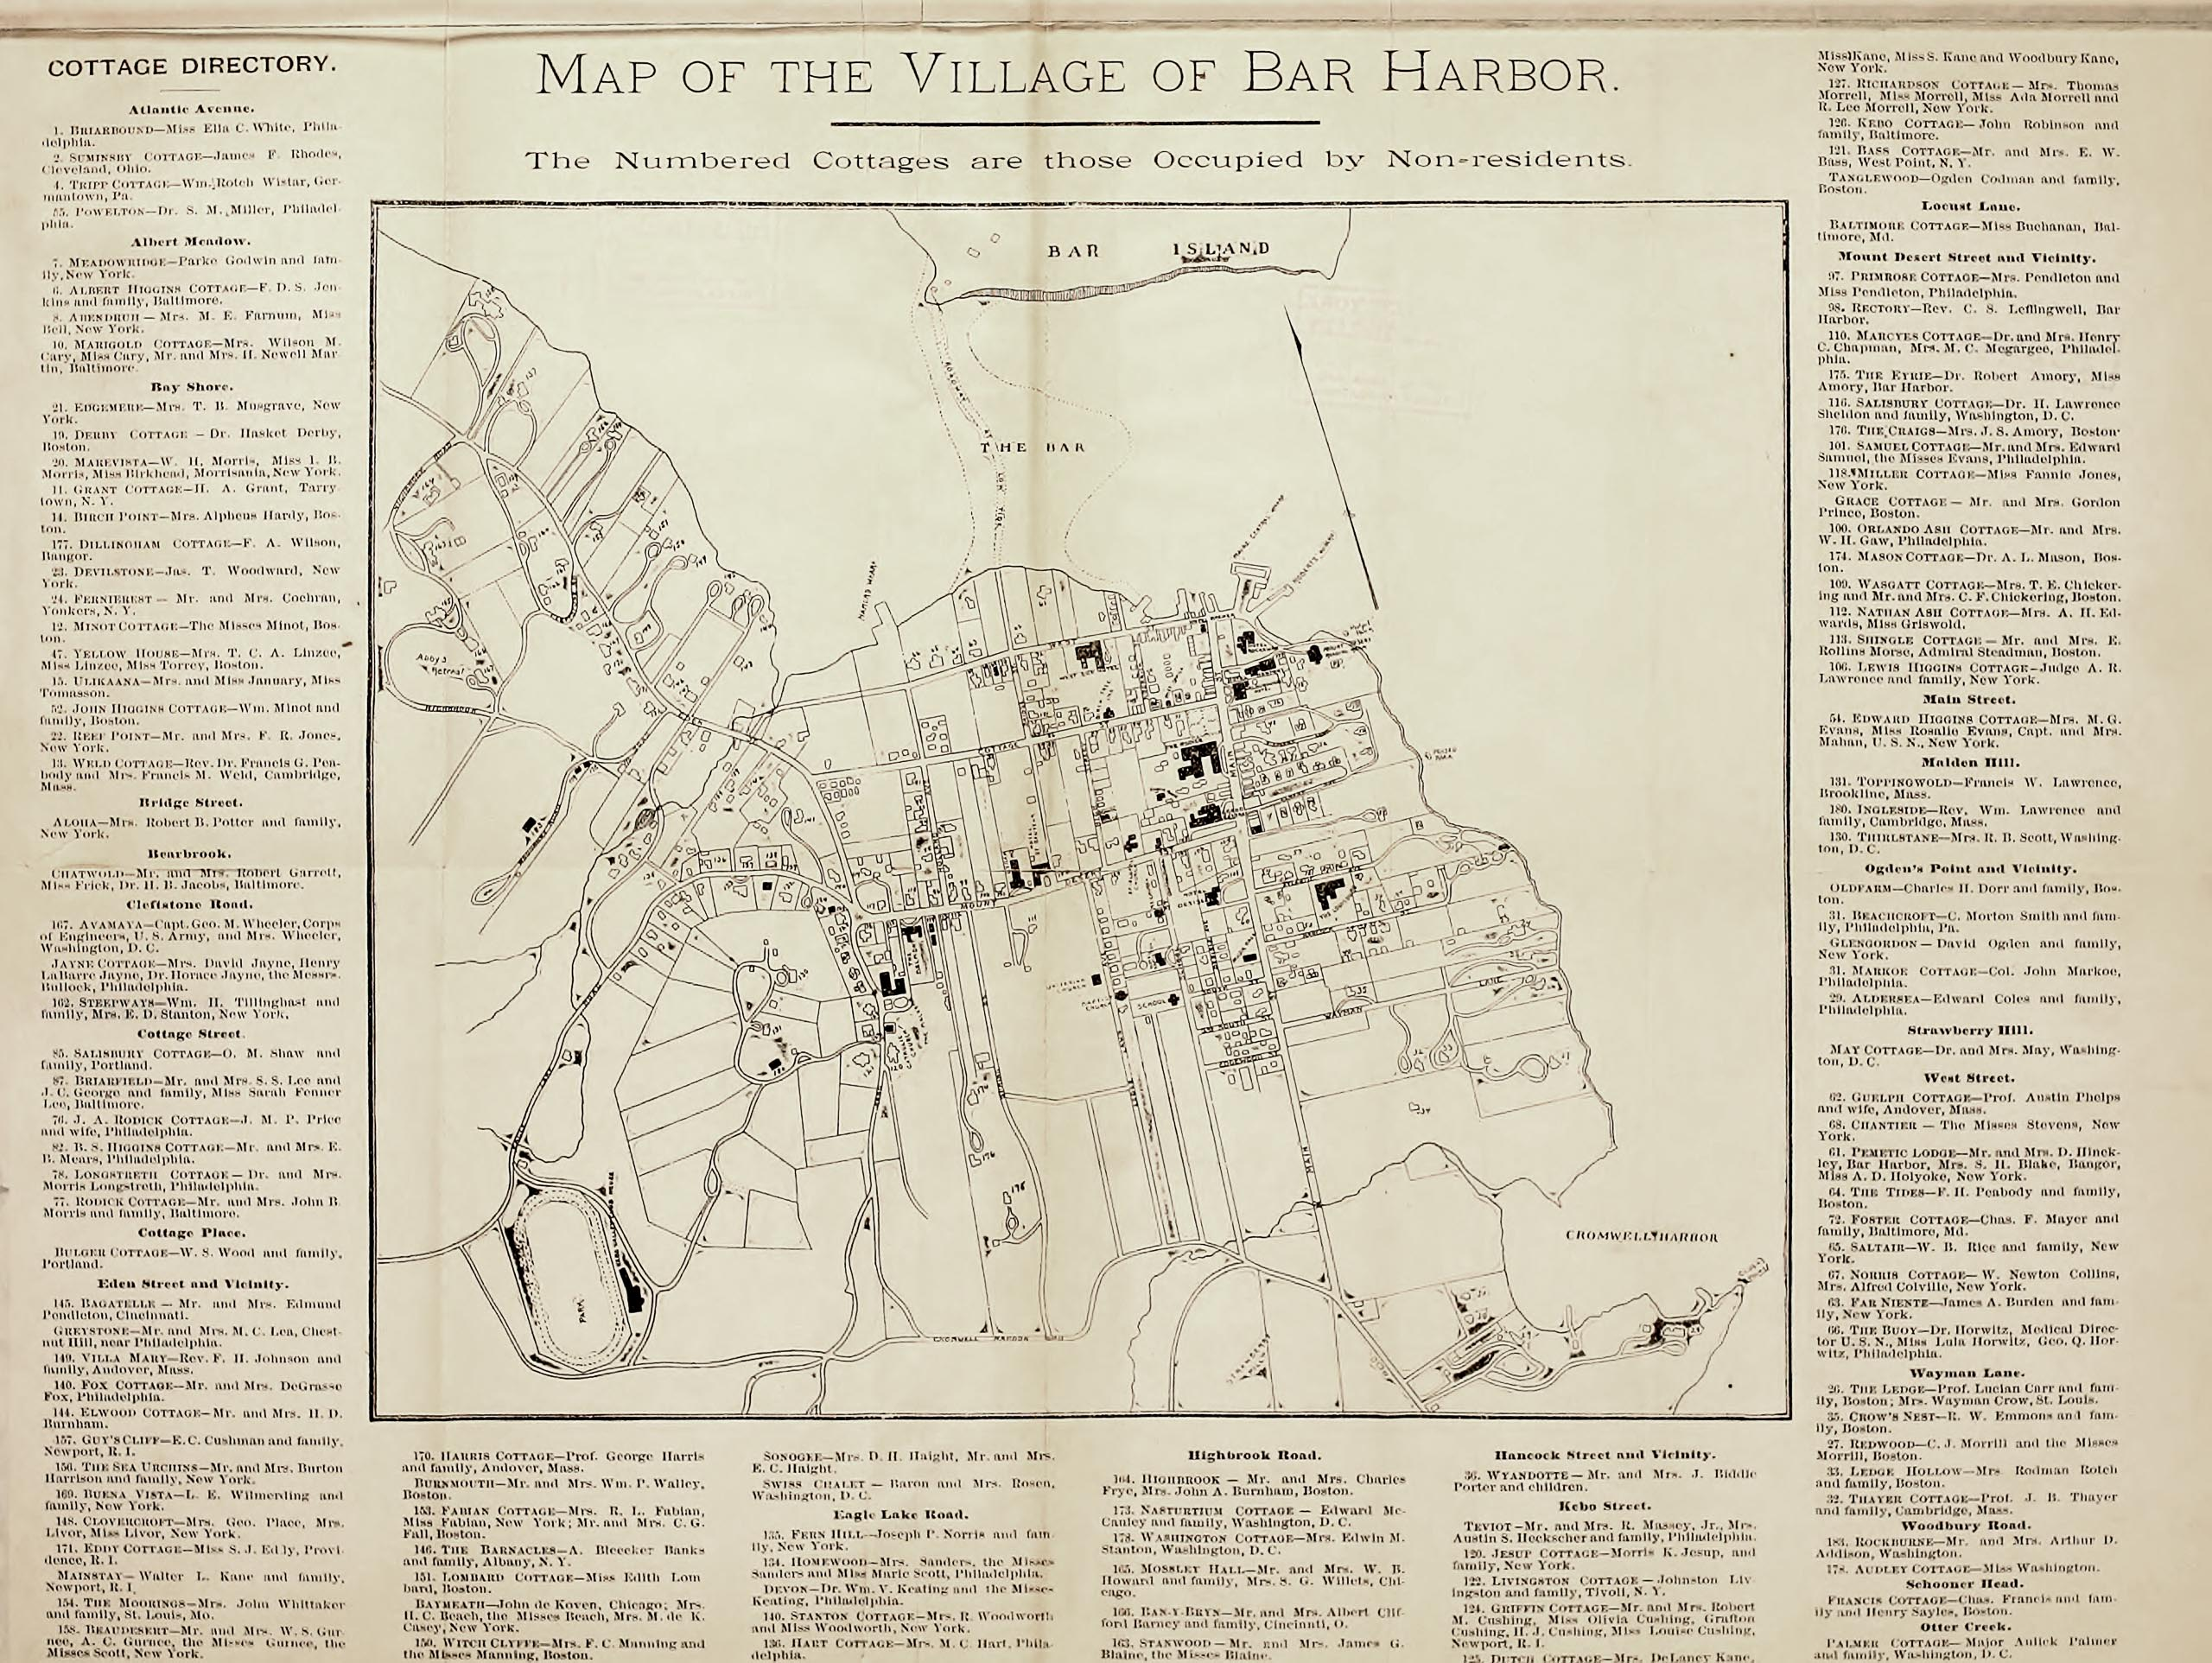 Map and Cottage Directory of the Village of Bar Harbor - 1890